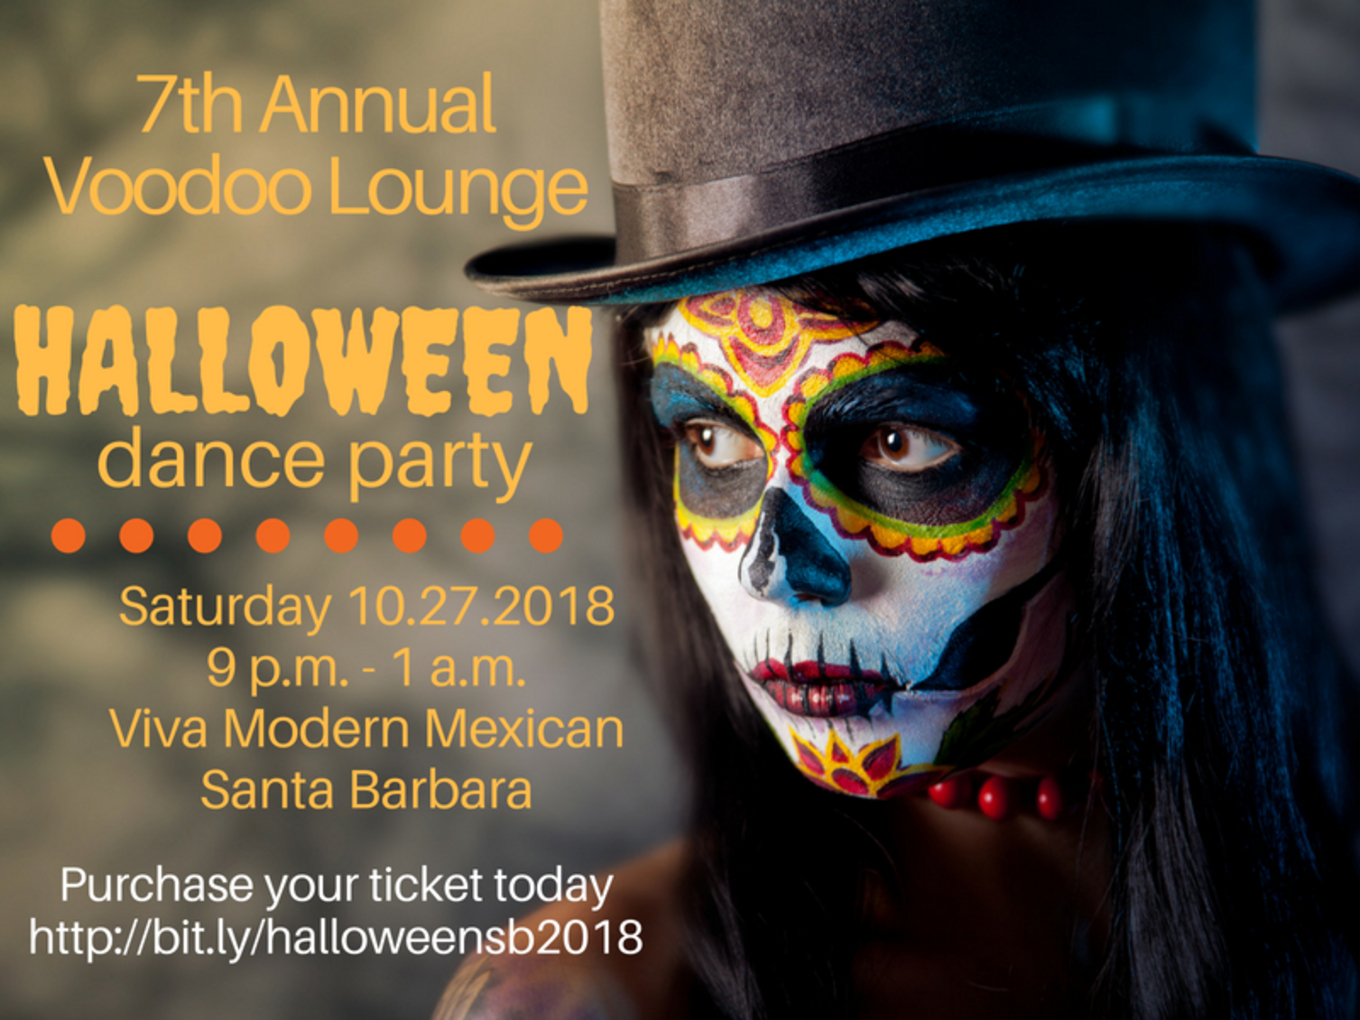 voodoo lounge 7th annual halloween dance party - tickets - viva